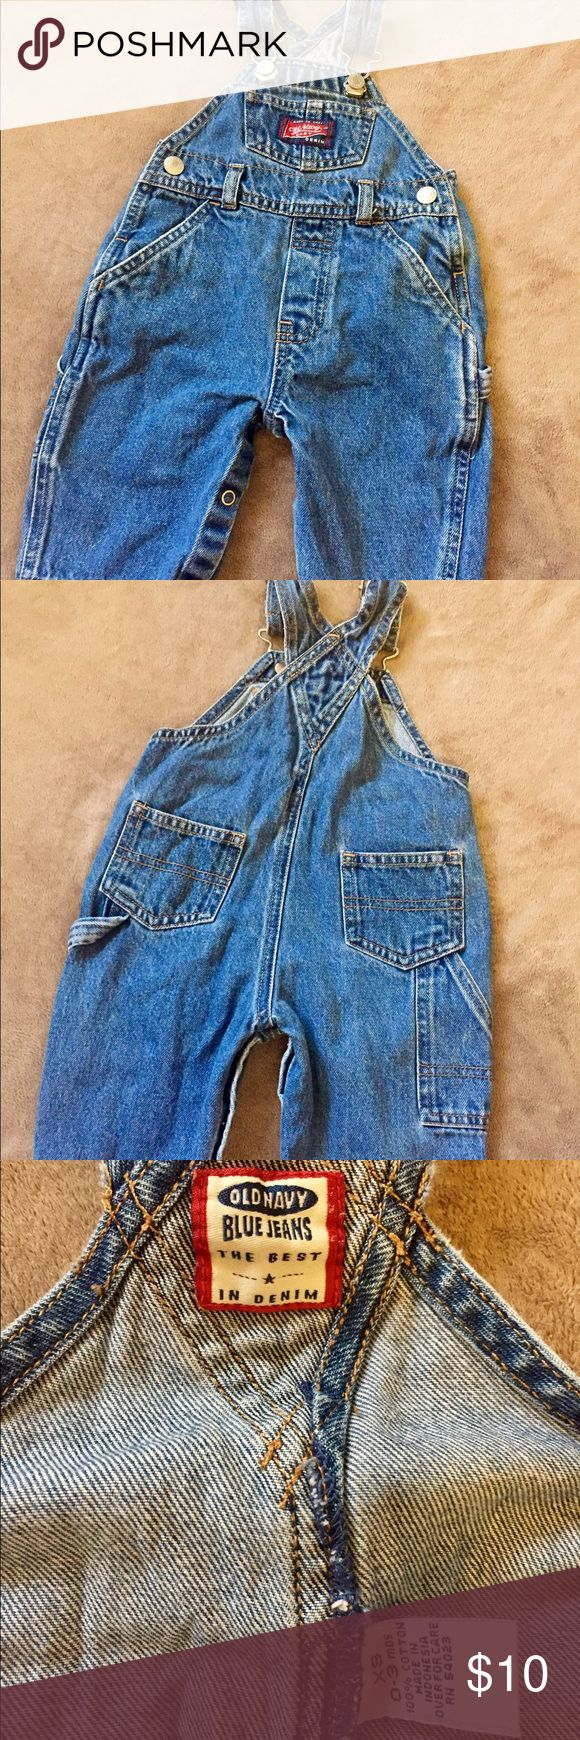 ✨Old Navy✨infant denim overalls Adorable Old Navy infant denim overalls, XS 0-3m. Good condition, no tears or stains. Old Navy Bottoms Overalls